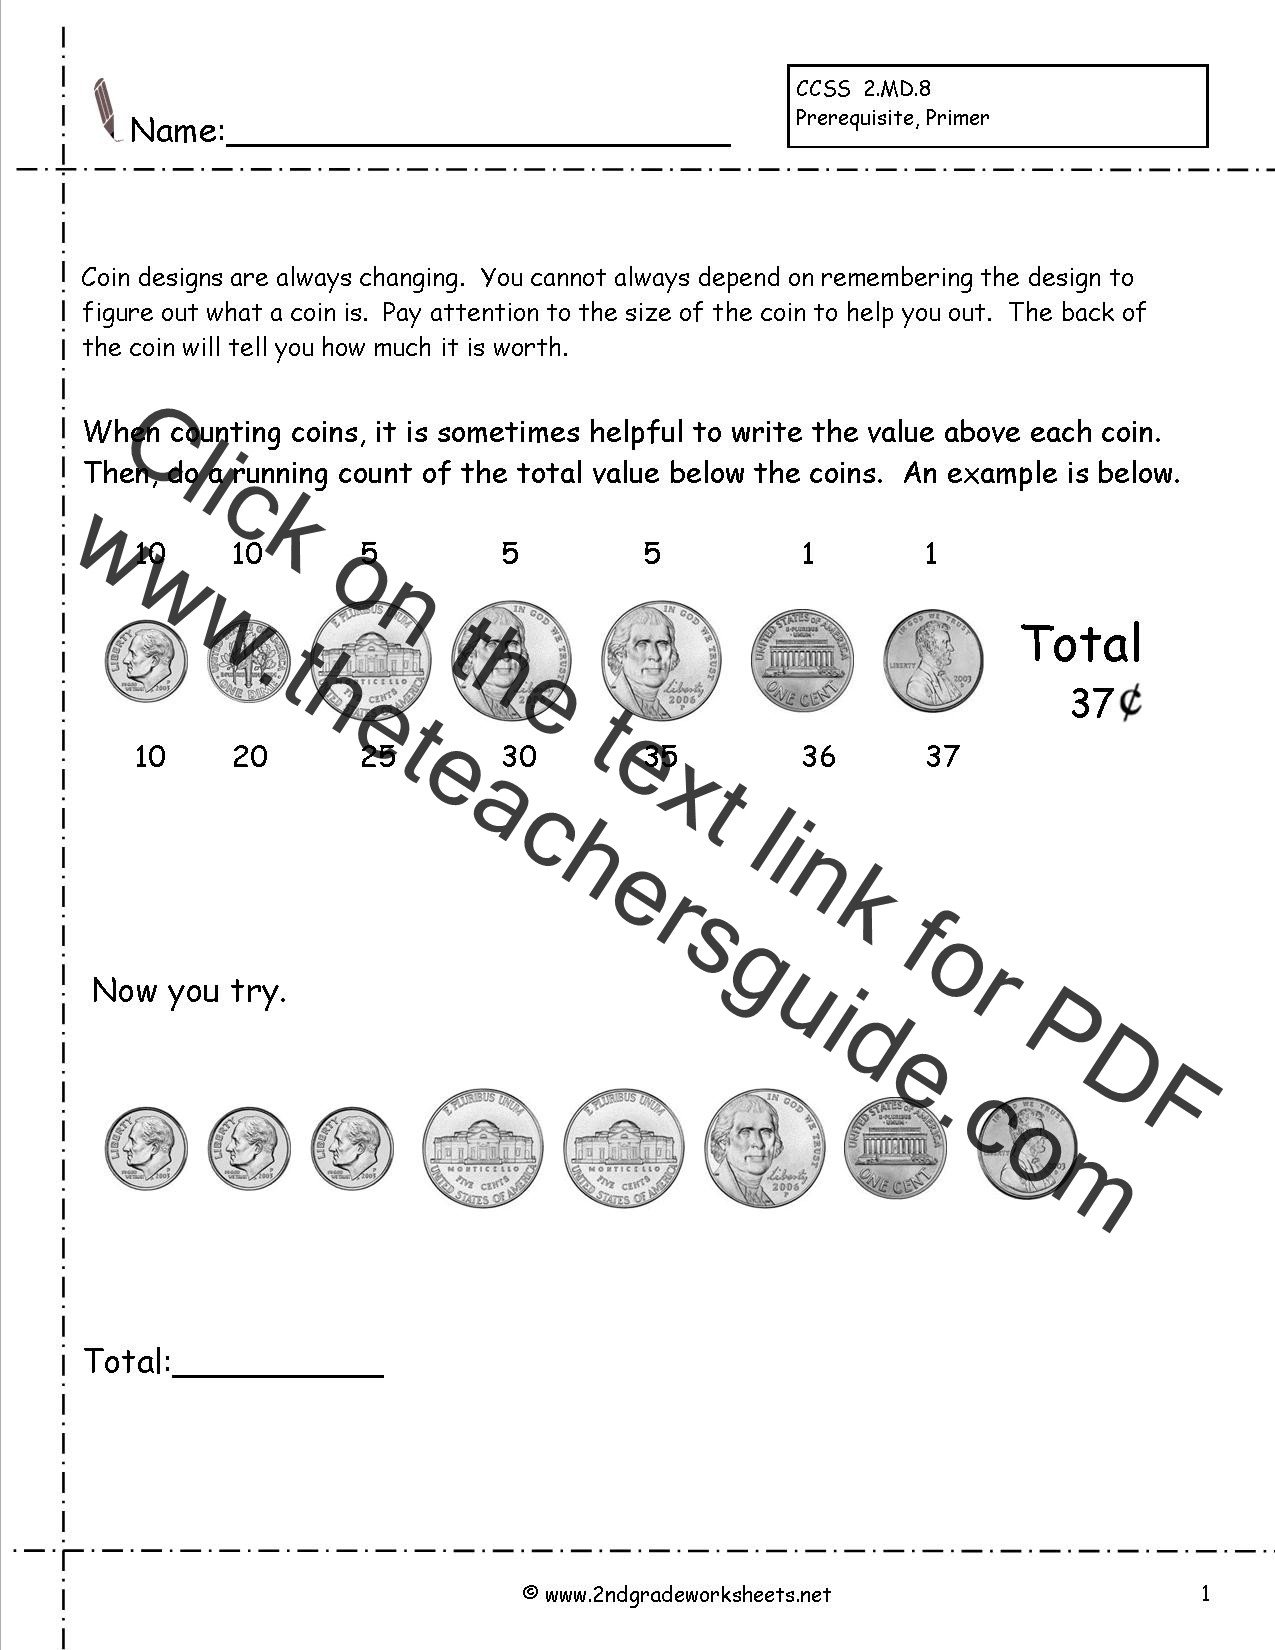 Counting Change Back Worksheets Counting Coins and Money Worksheets and Printouts